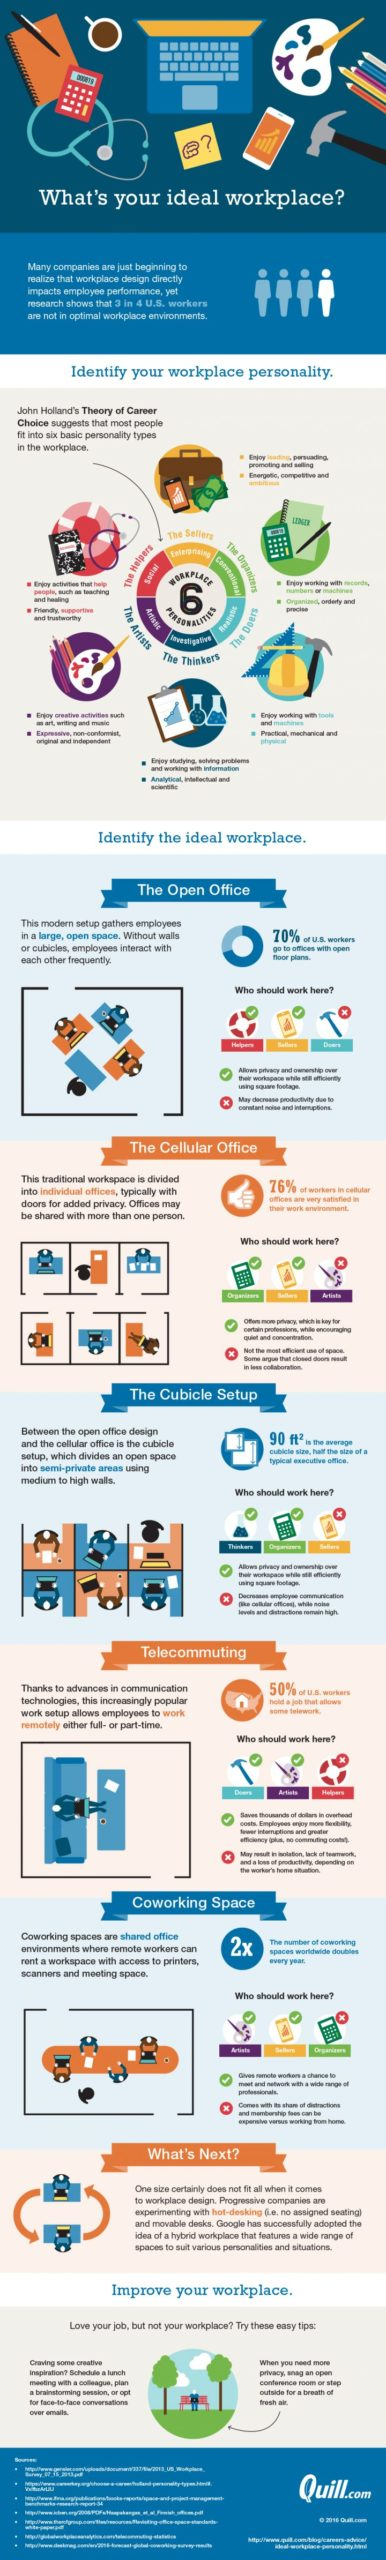 perfect workplace infographic